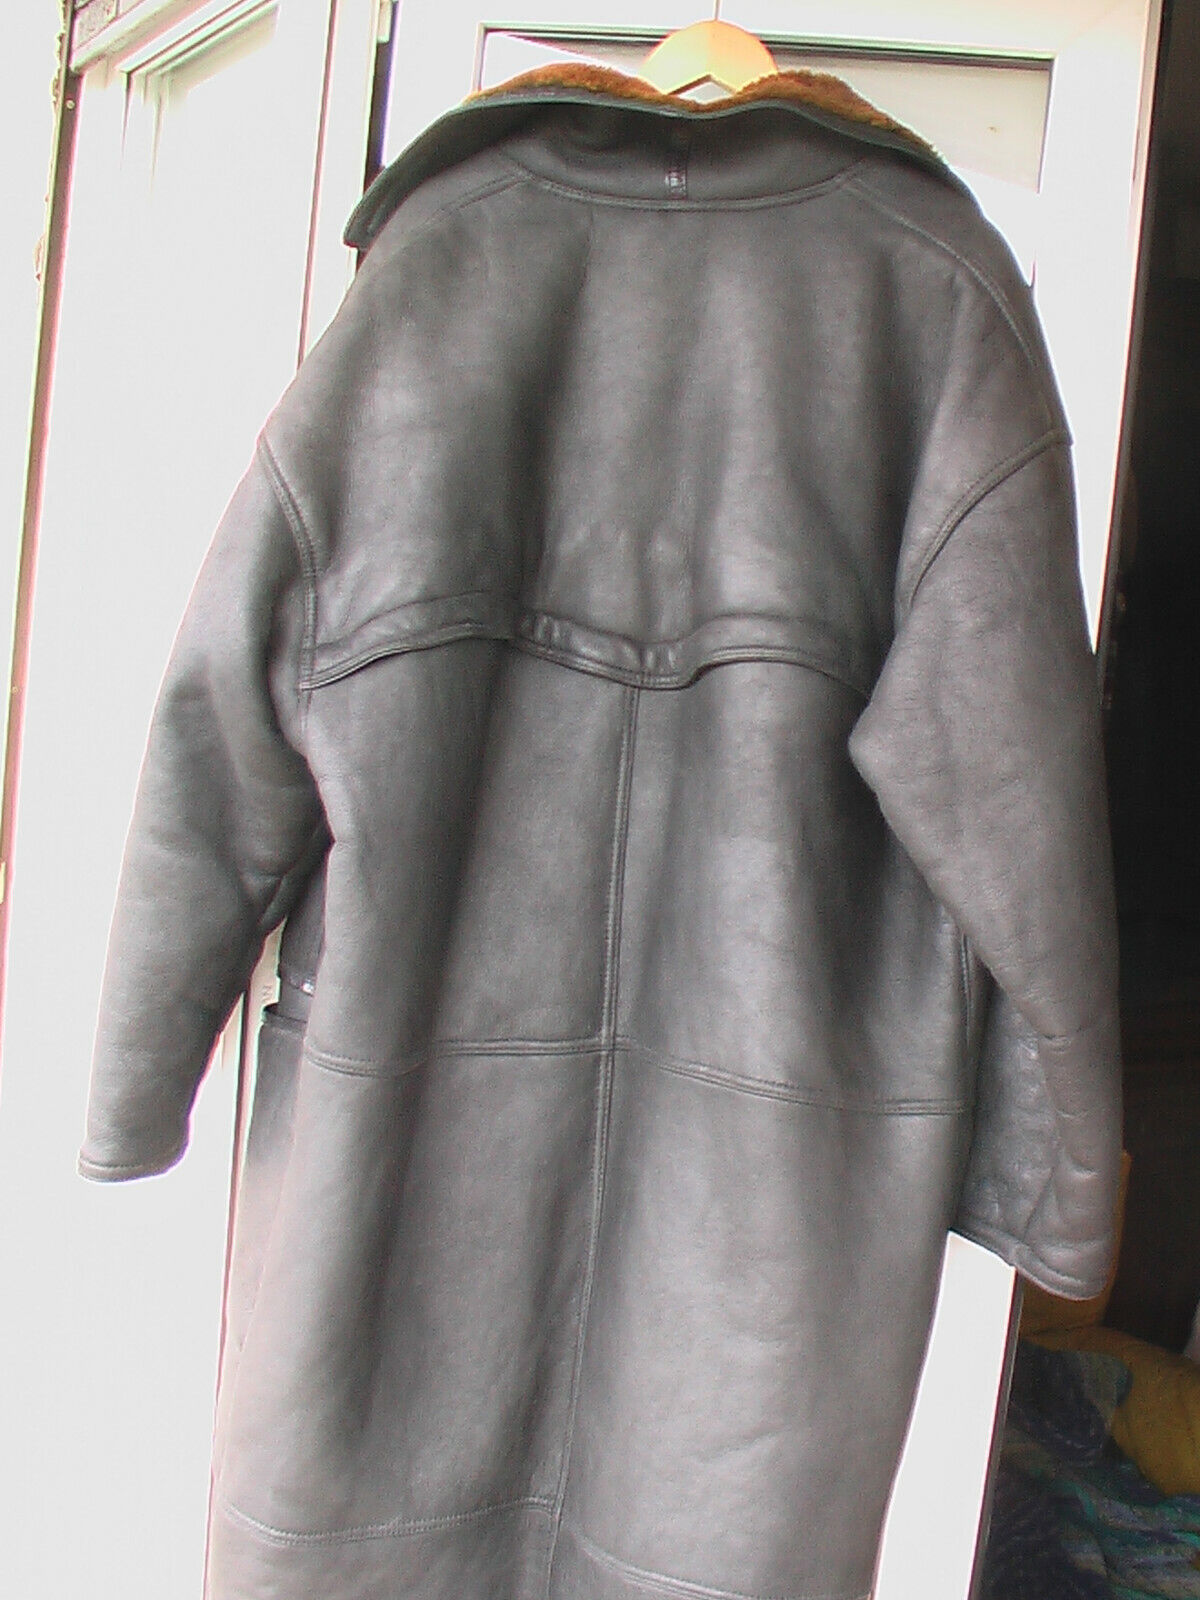 Manteau marithé & françois girbaud by ruffo taille 54 56 cuir mouton shearling